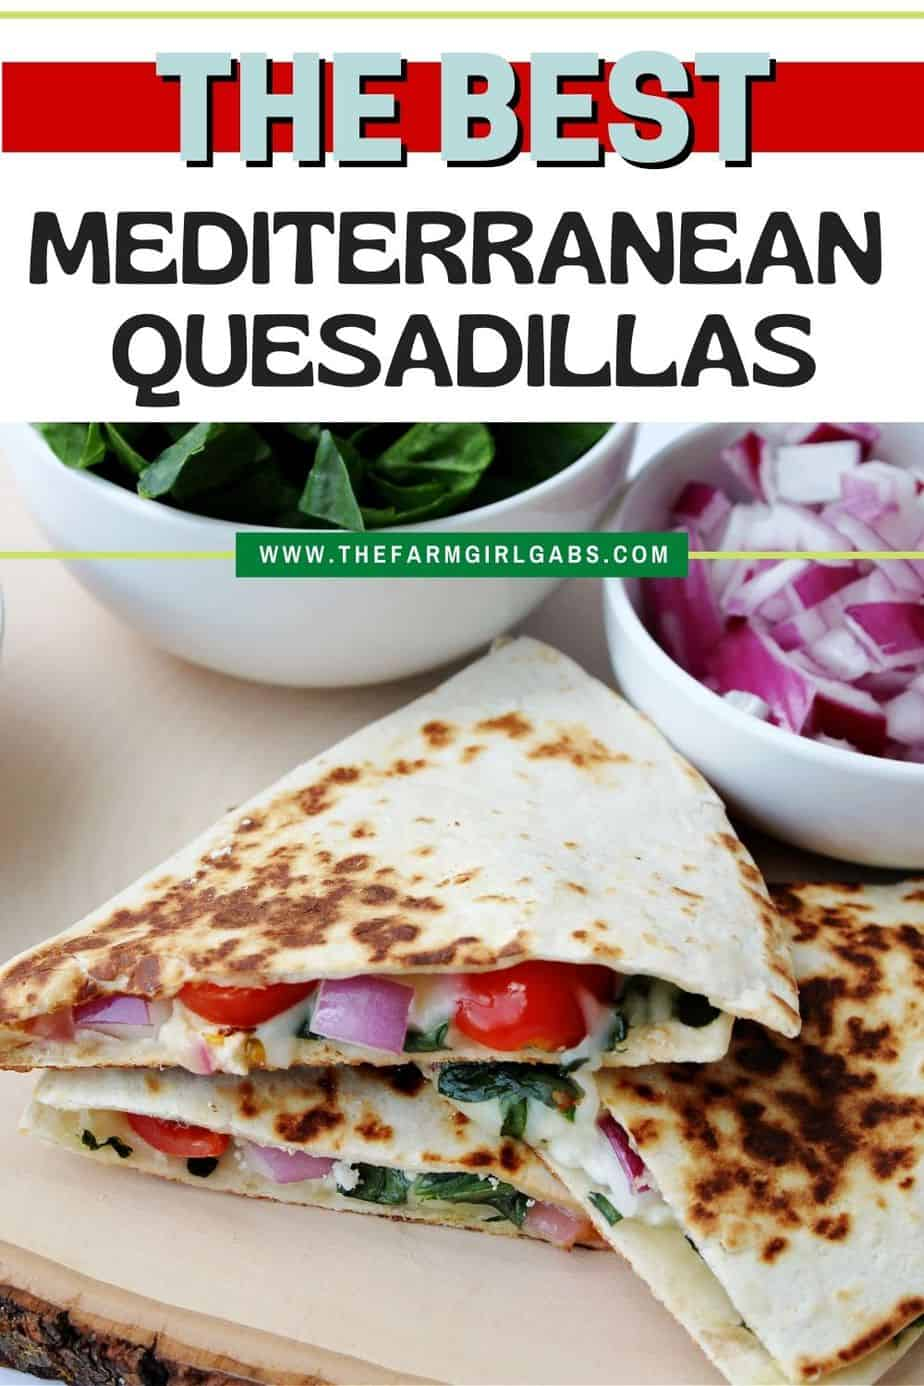 Use this Mediterranean Quesadillas recipe to prepare a cheesy meat-free meal full of fresh vegetables. These quesadillas are perfect to eat for breakfast, lunch, or dinner! This easy quesadilla recipe is a delicious meatless meal idea. It's a perfect sandwich recipe for lunch or dinner.